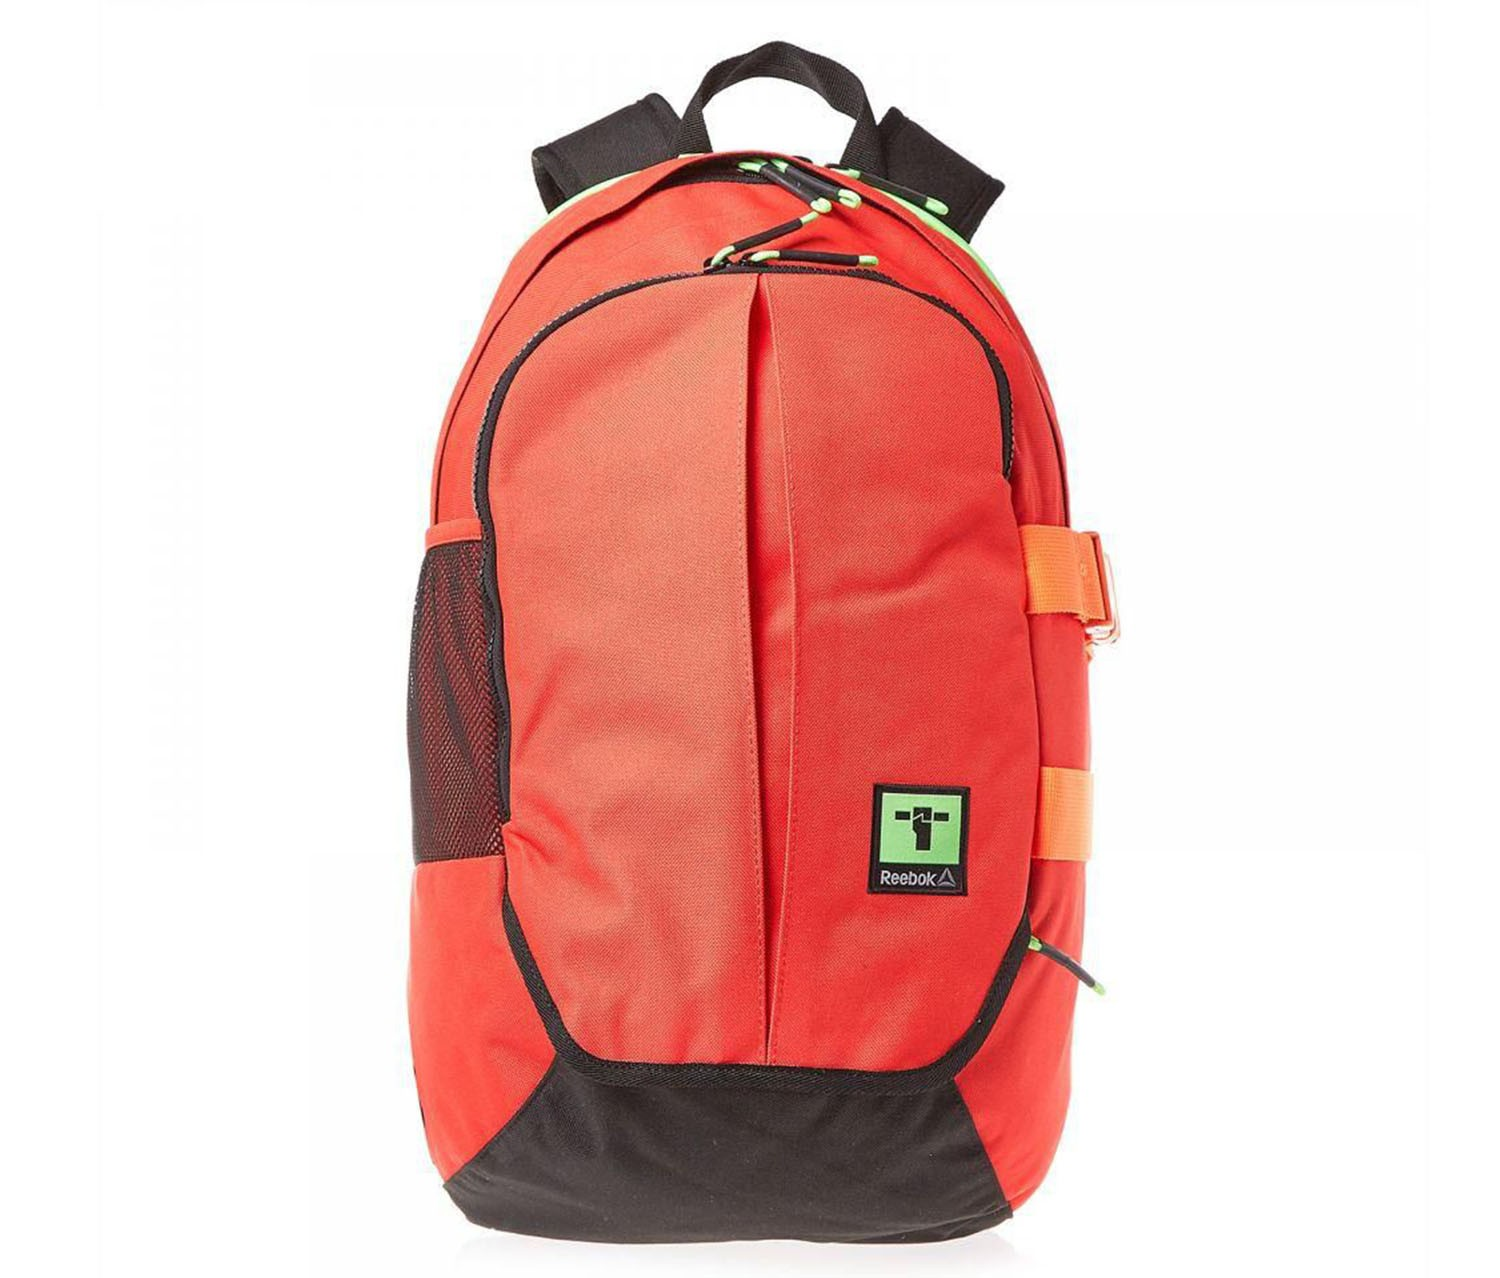 8698f69f529 Shop Reebok Reebok Unisex Sports Backpack, Red for Bags in Lebanon ...